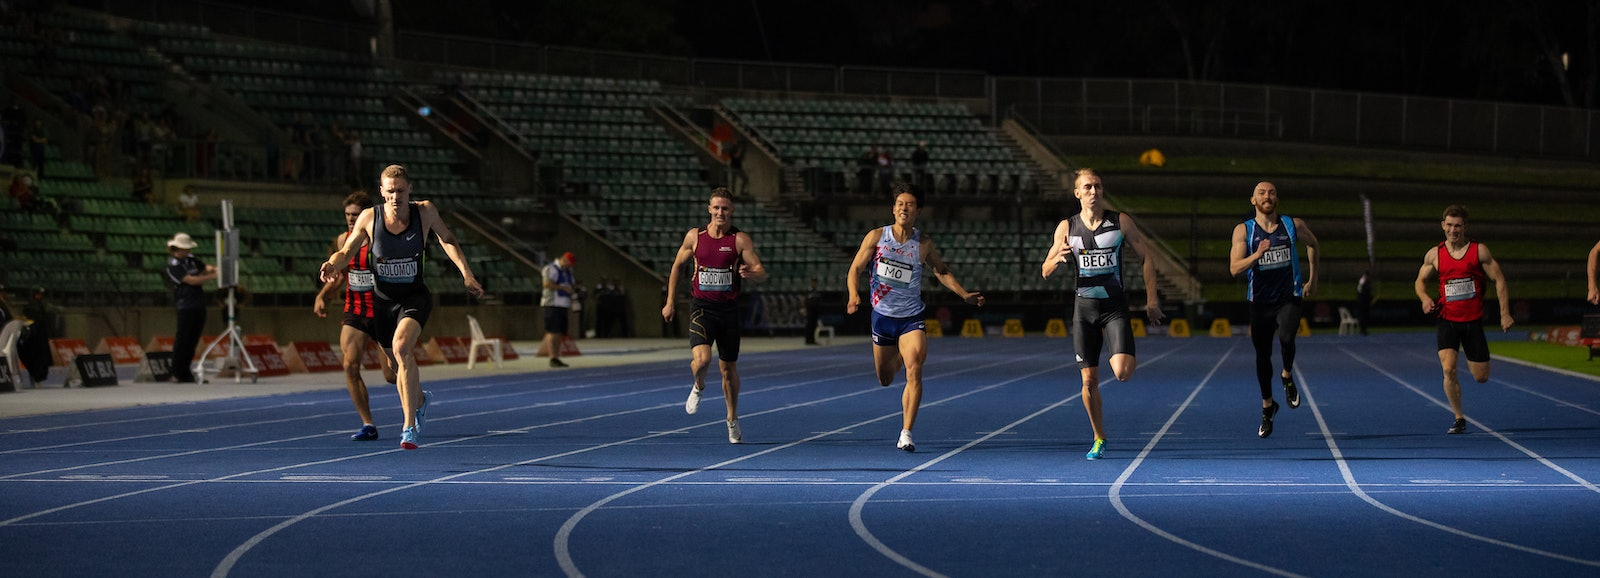 400m final - Steve Solomon outclassed the field in the 400m at the 2019 Australian Championships. Photo: Casey Sims